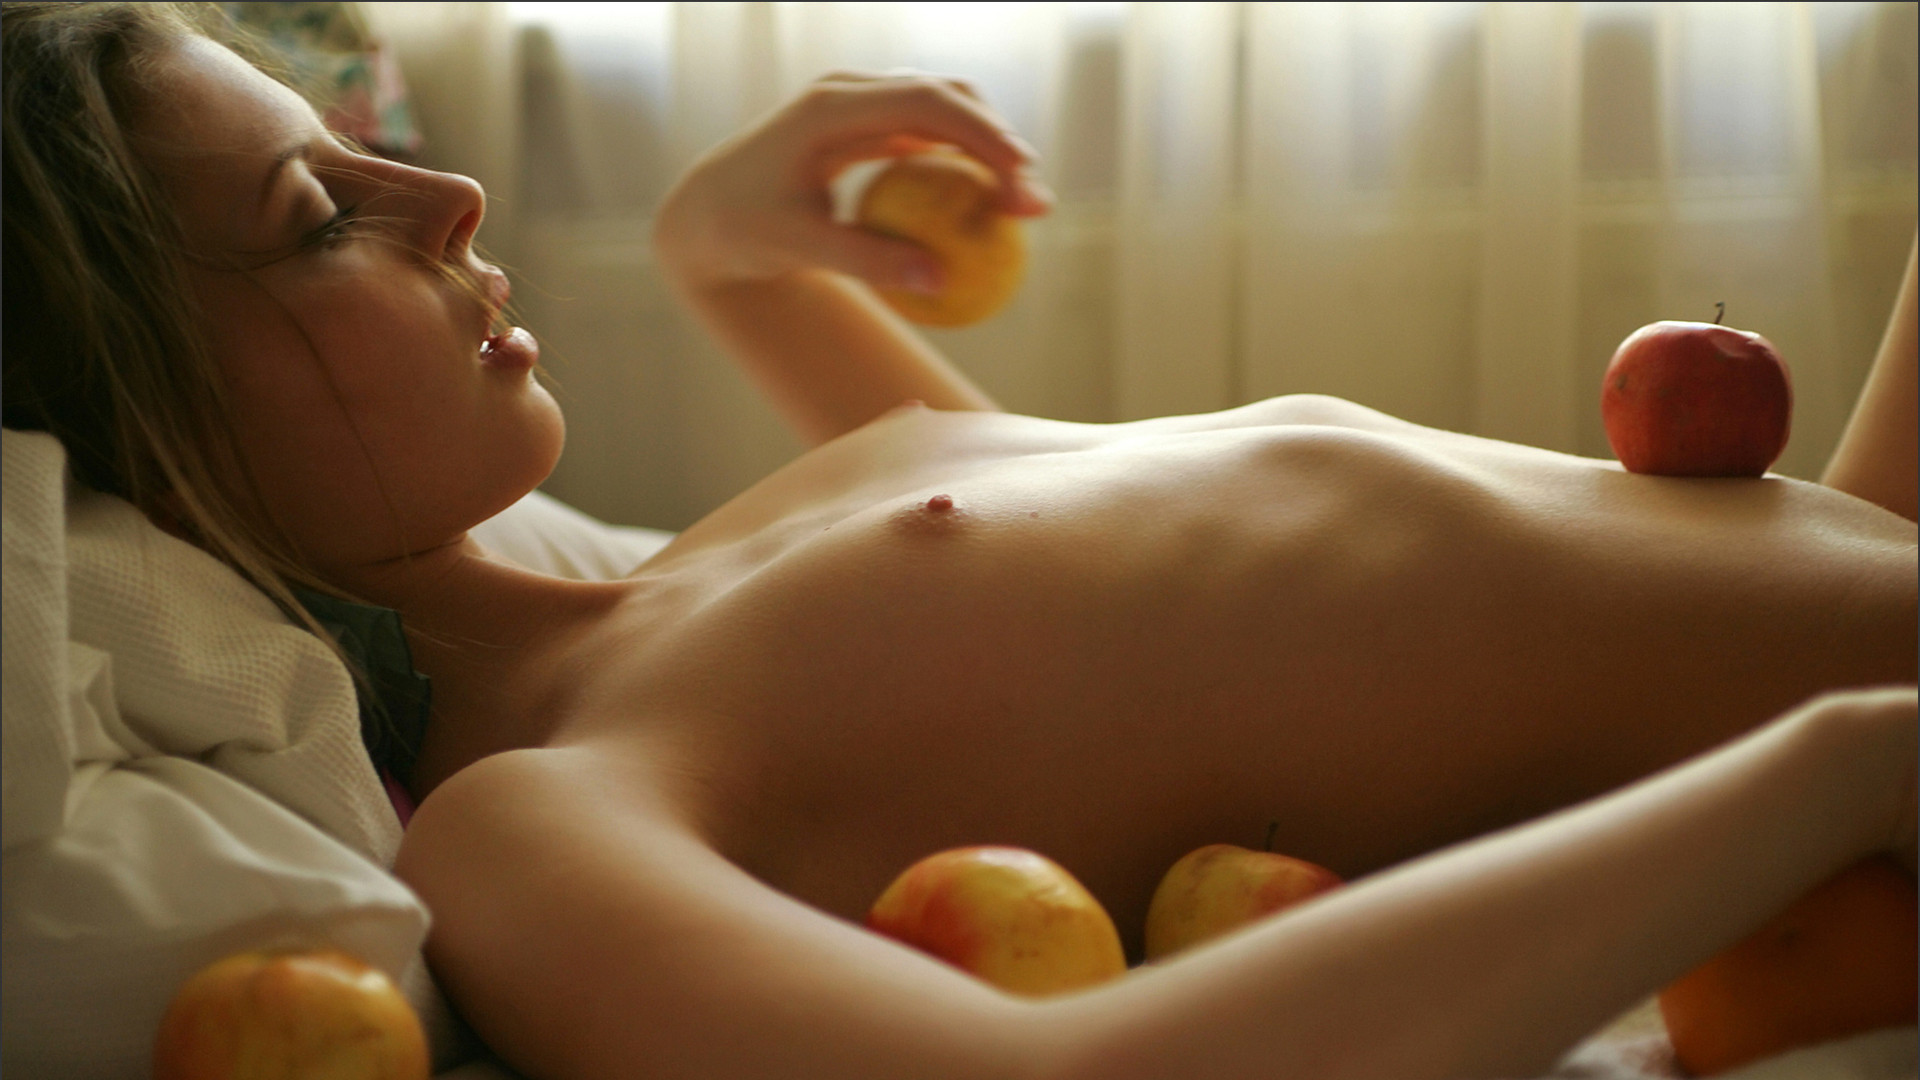 bathing with bae busty and horny ashley adams porn video #eve,  #smalltits,  #nude,  #perfectnipples,  #lightandshadow,  #flatstomach,  #apples,  #petite